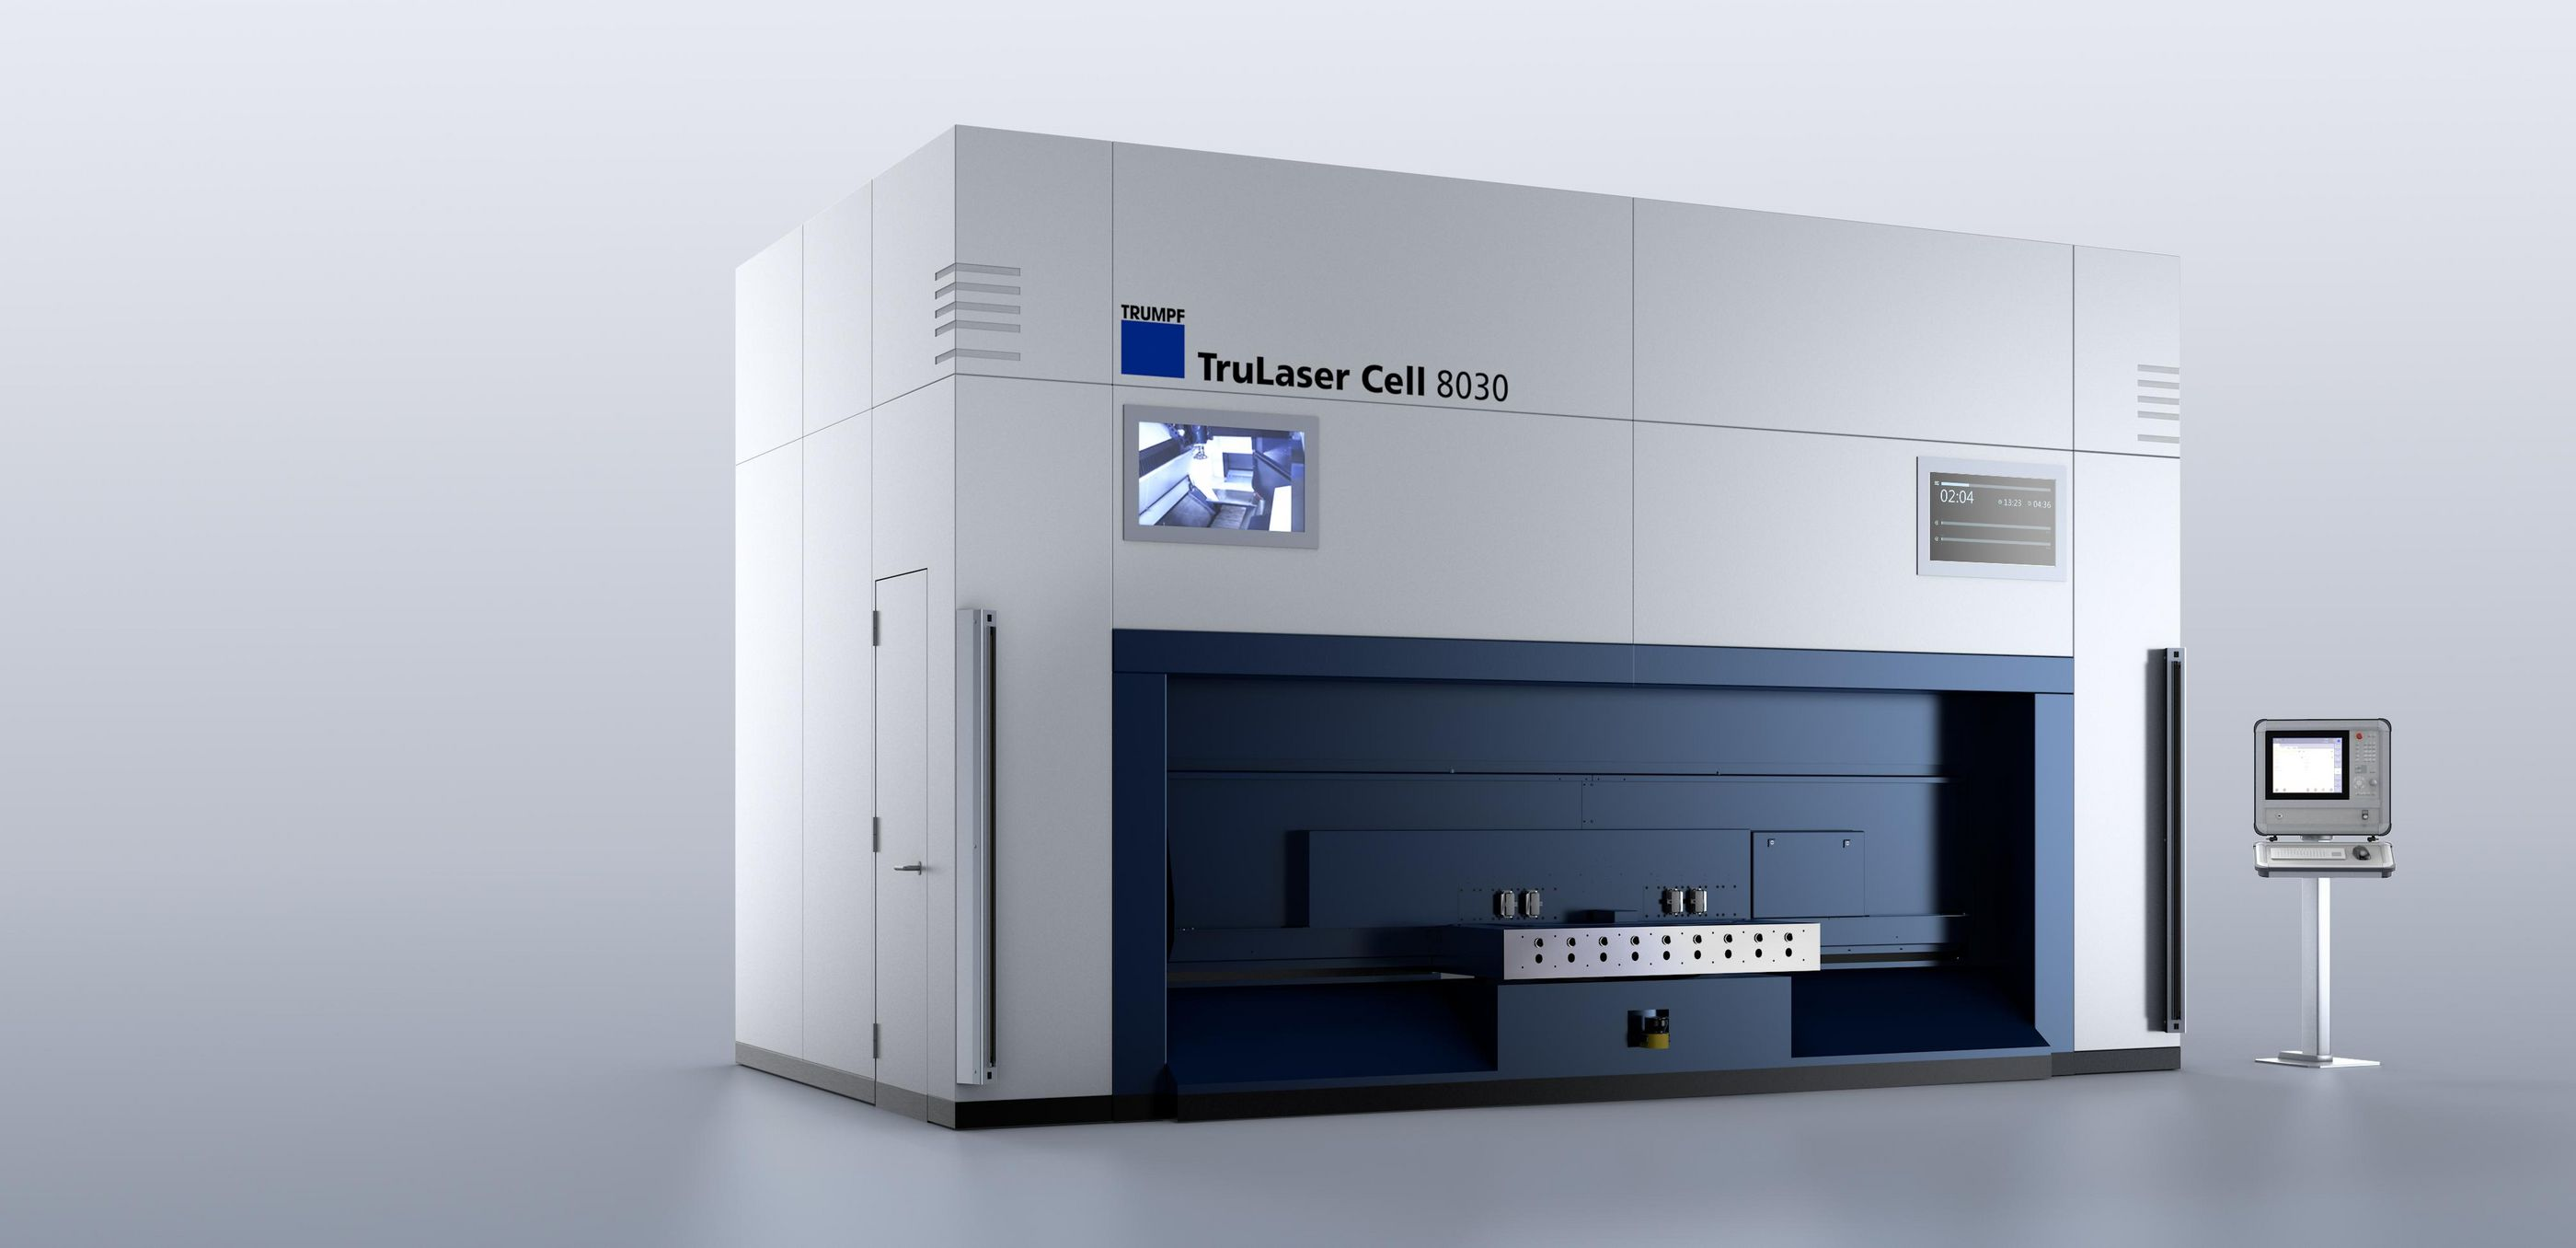 TruLaser Cell 8030 rotary indexing table